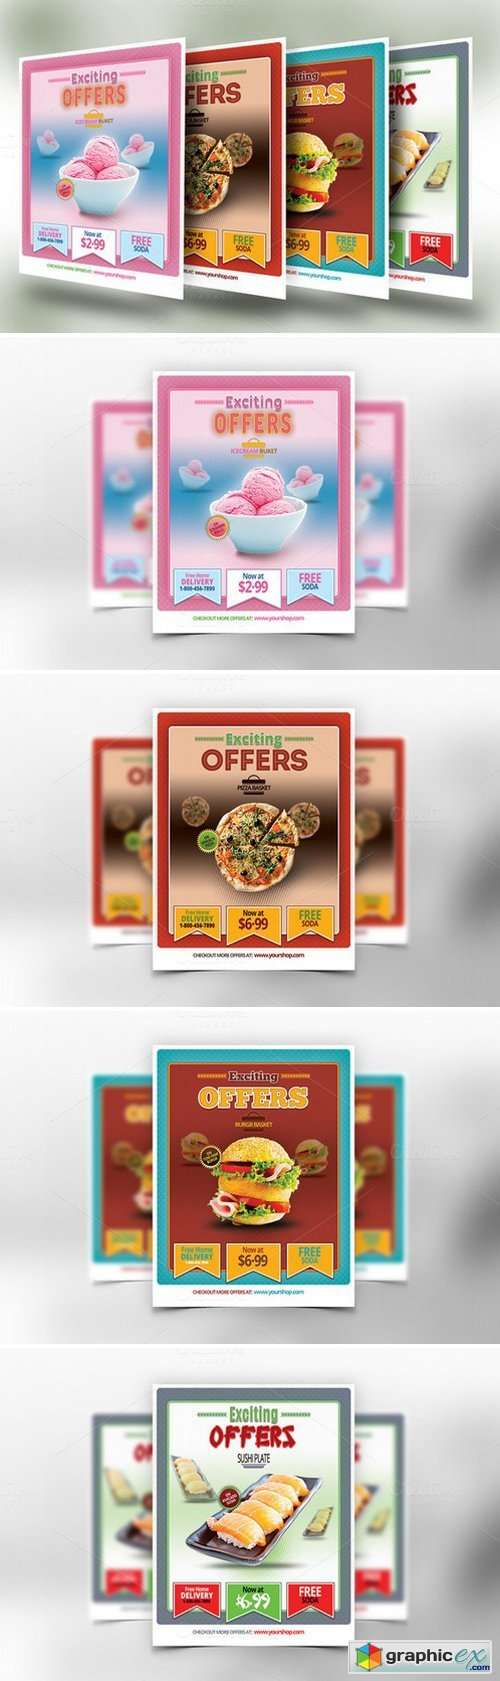 Restaurant Food Offers Flyer or Post